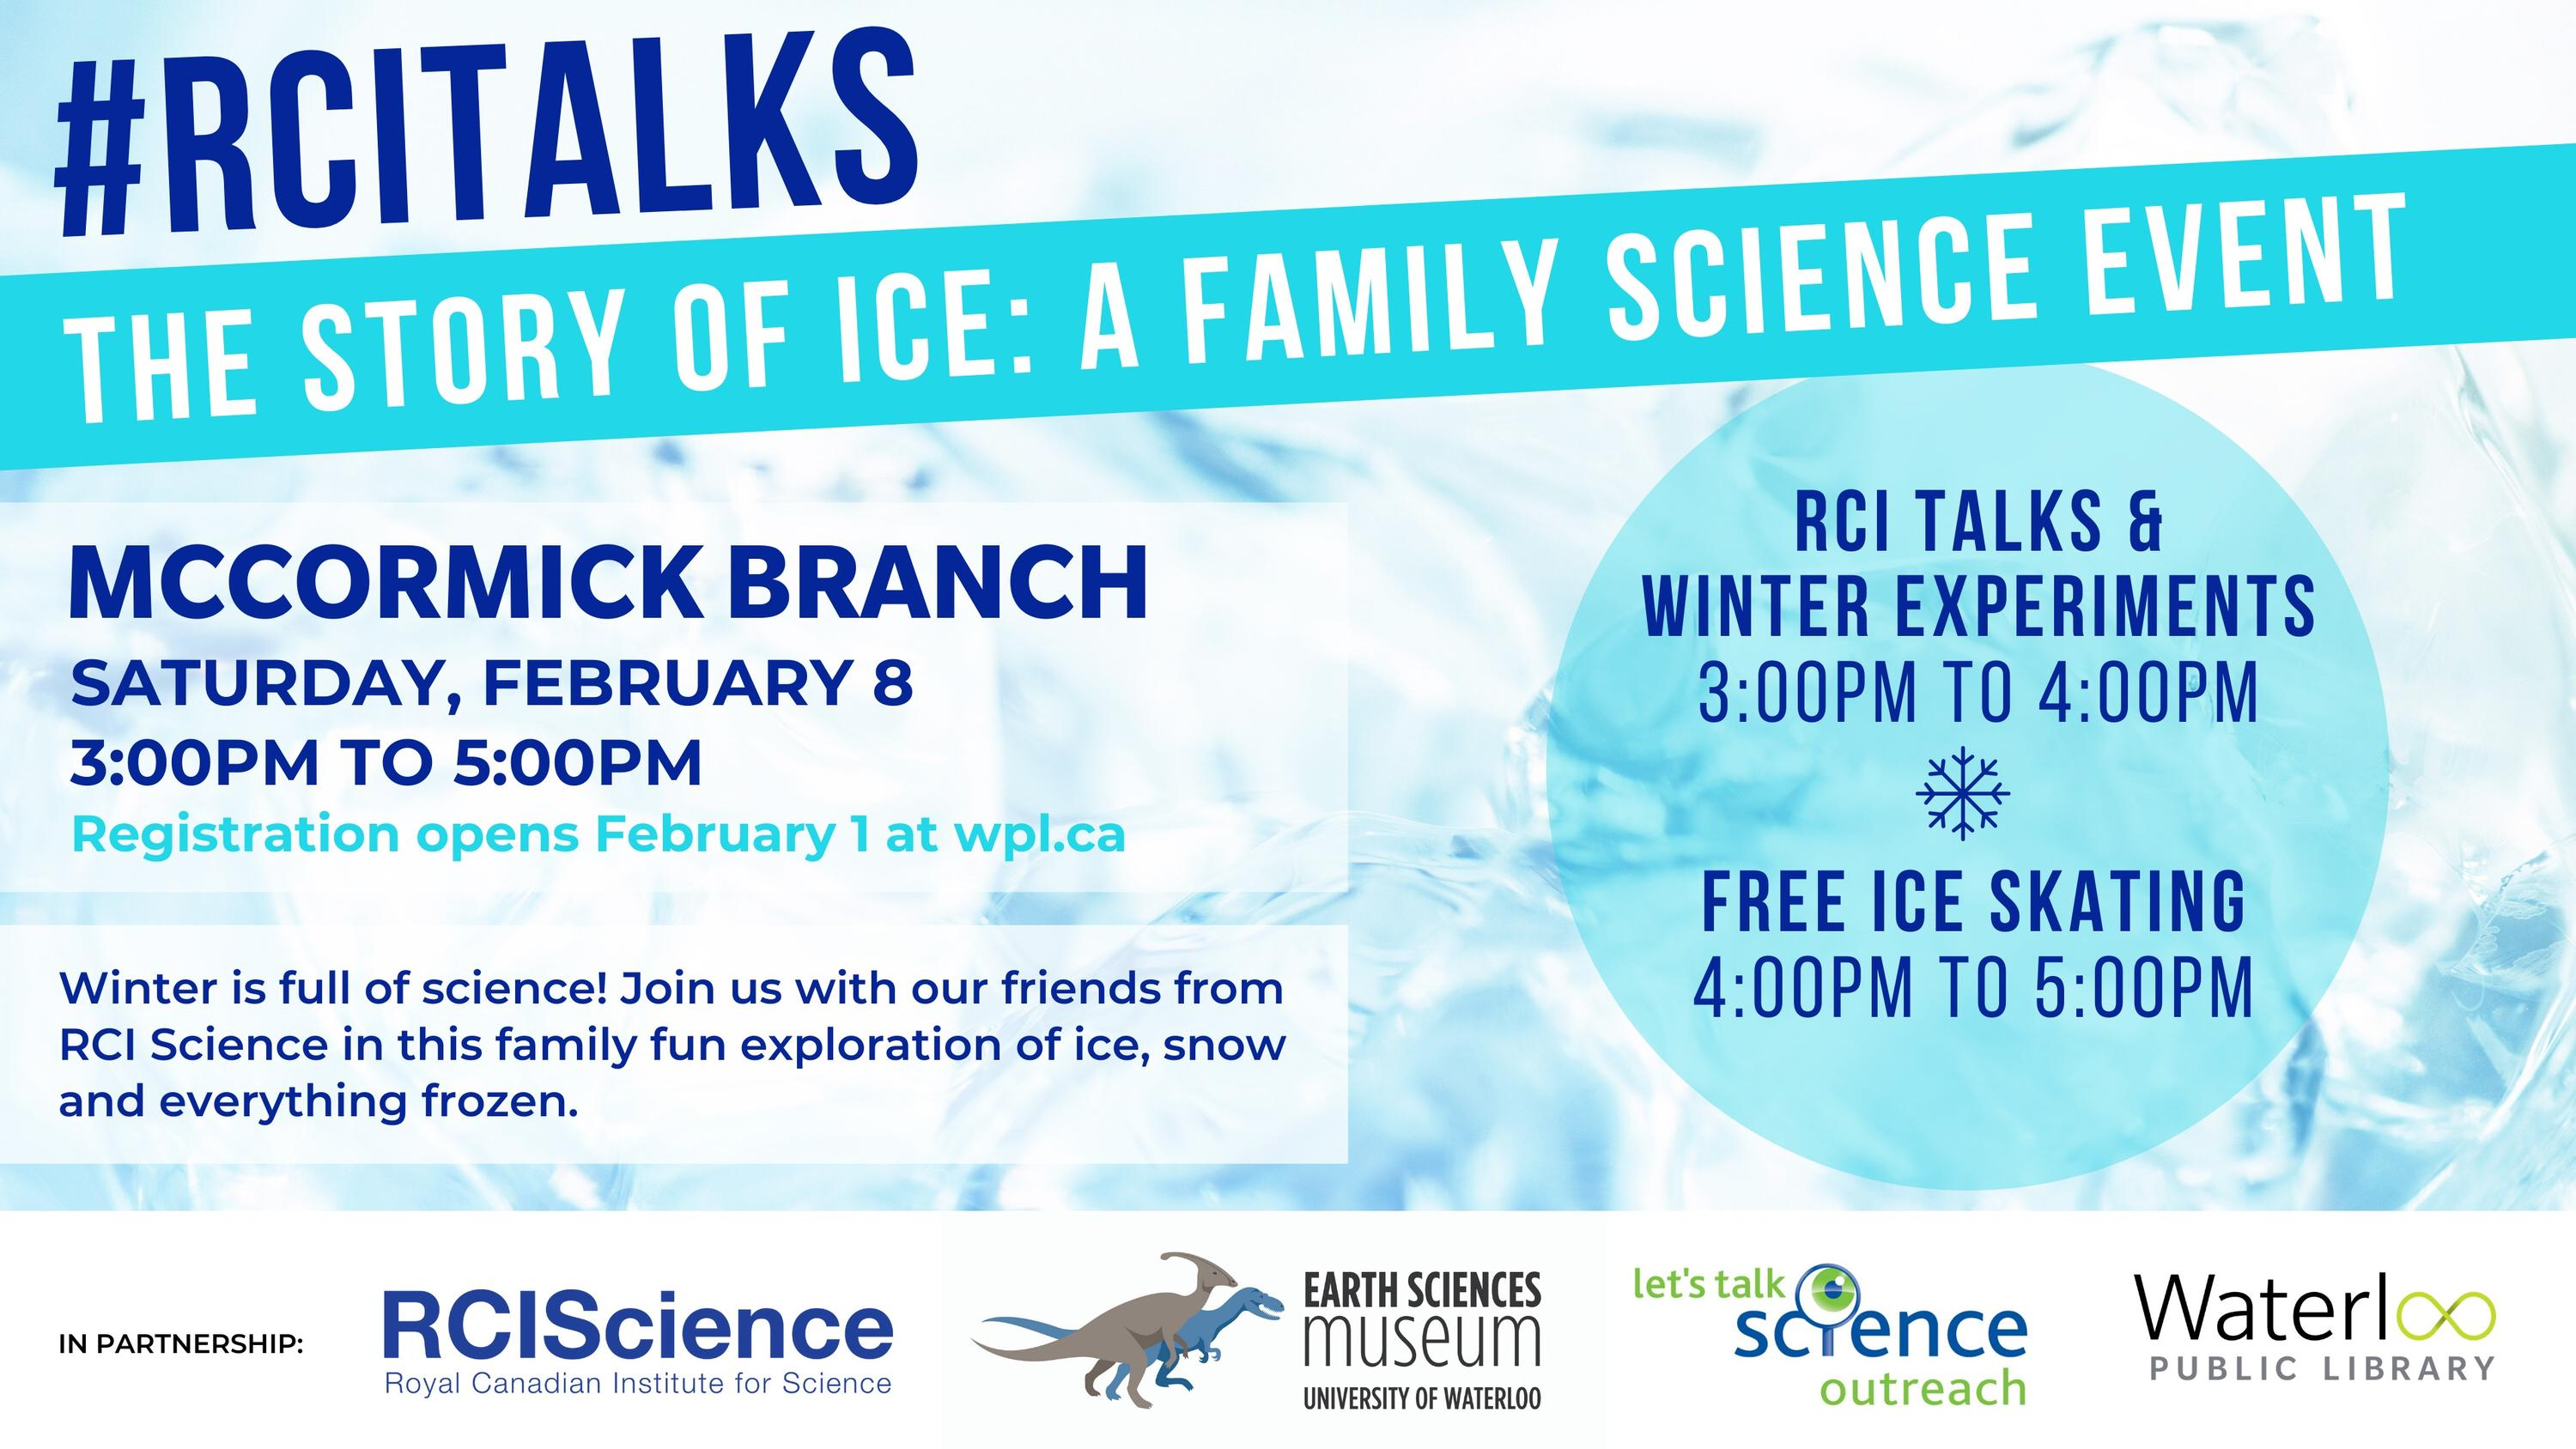 Informational poster for RCI Talks event